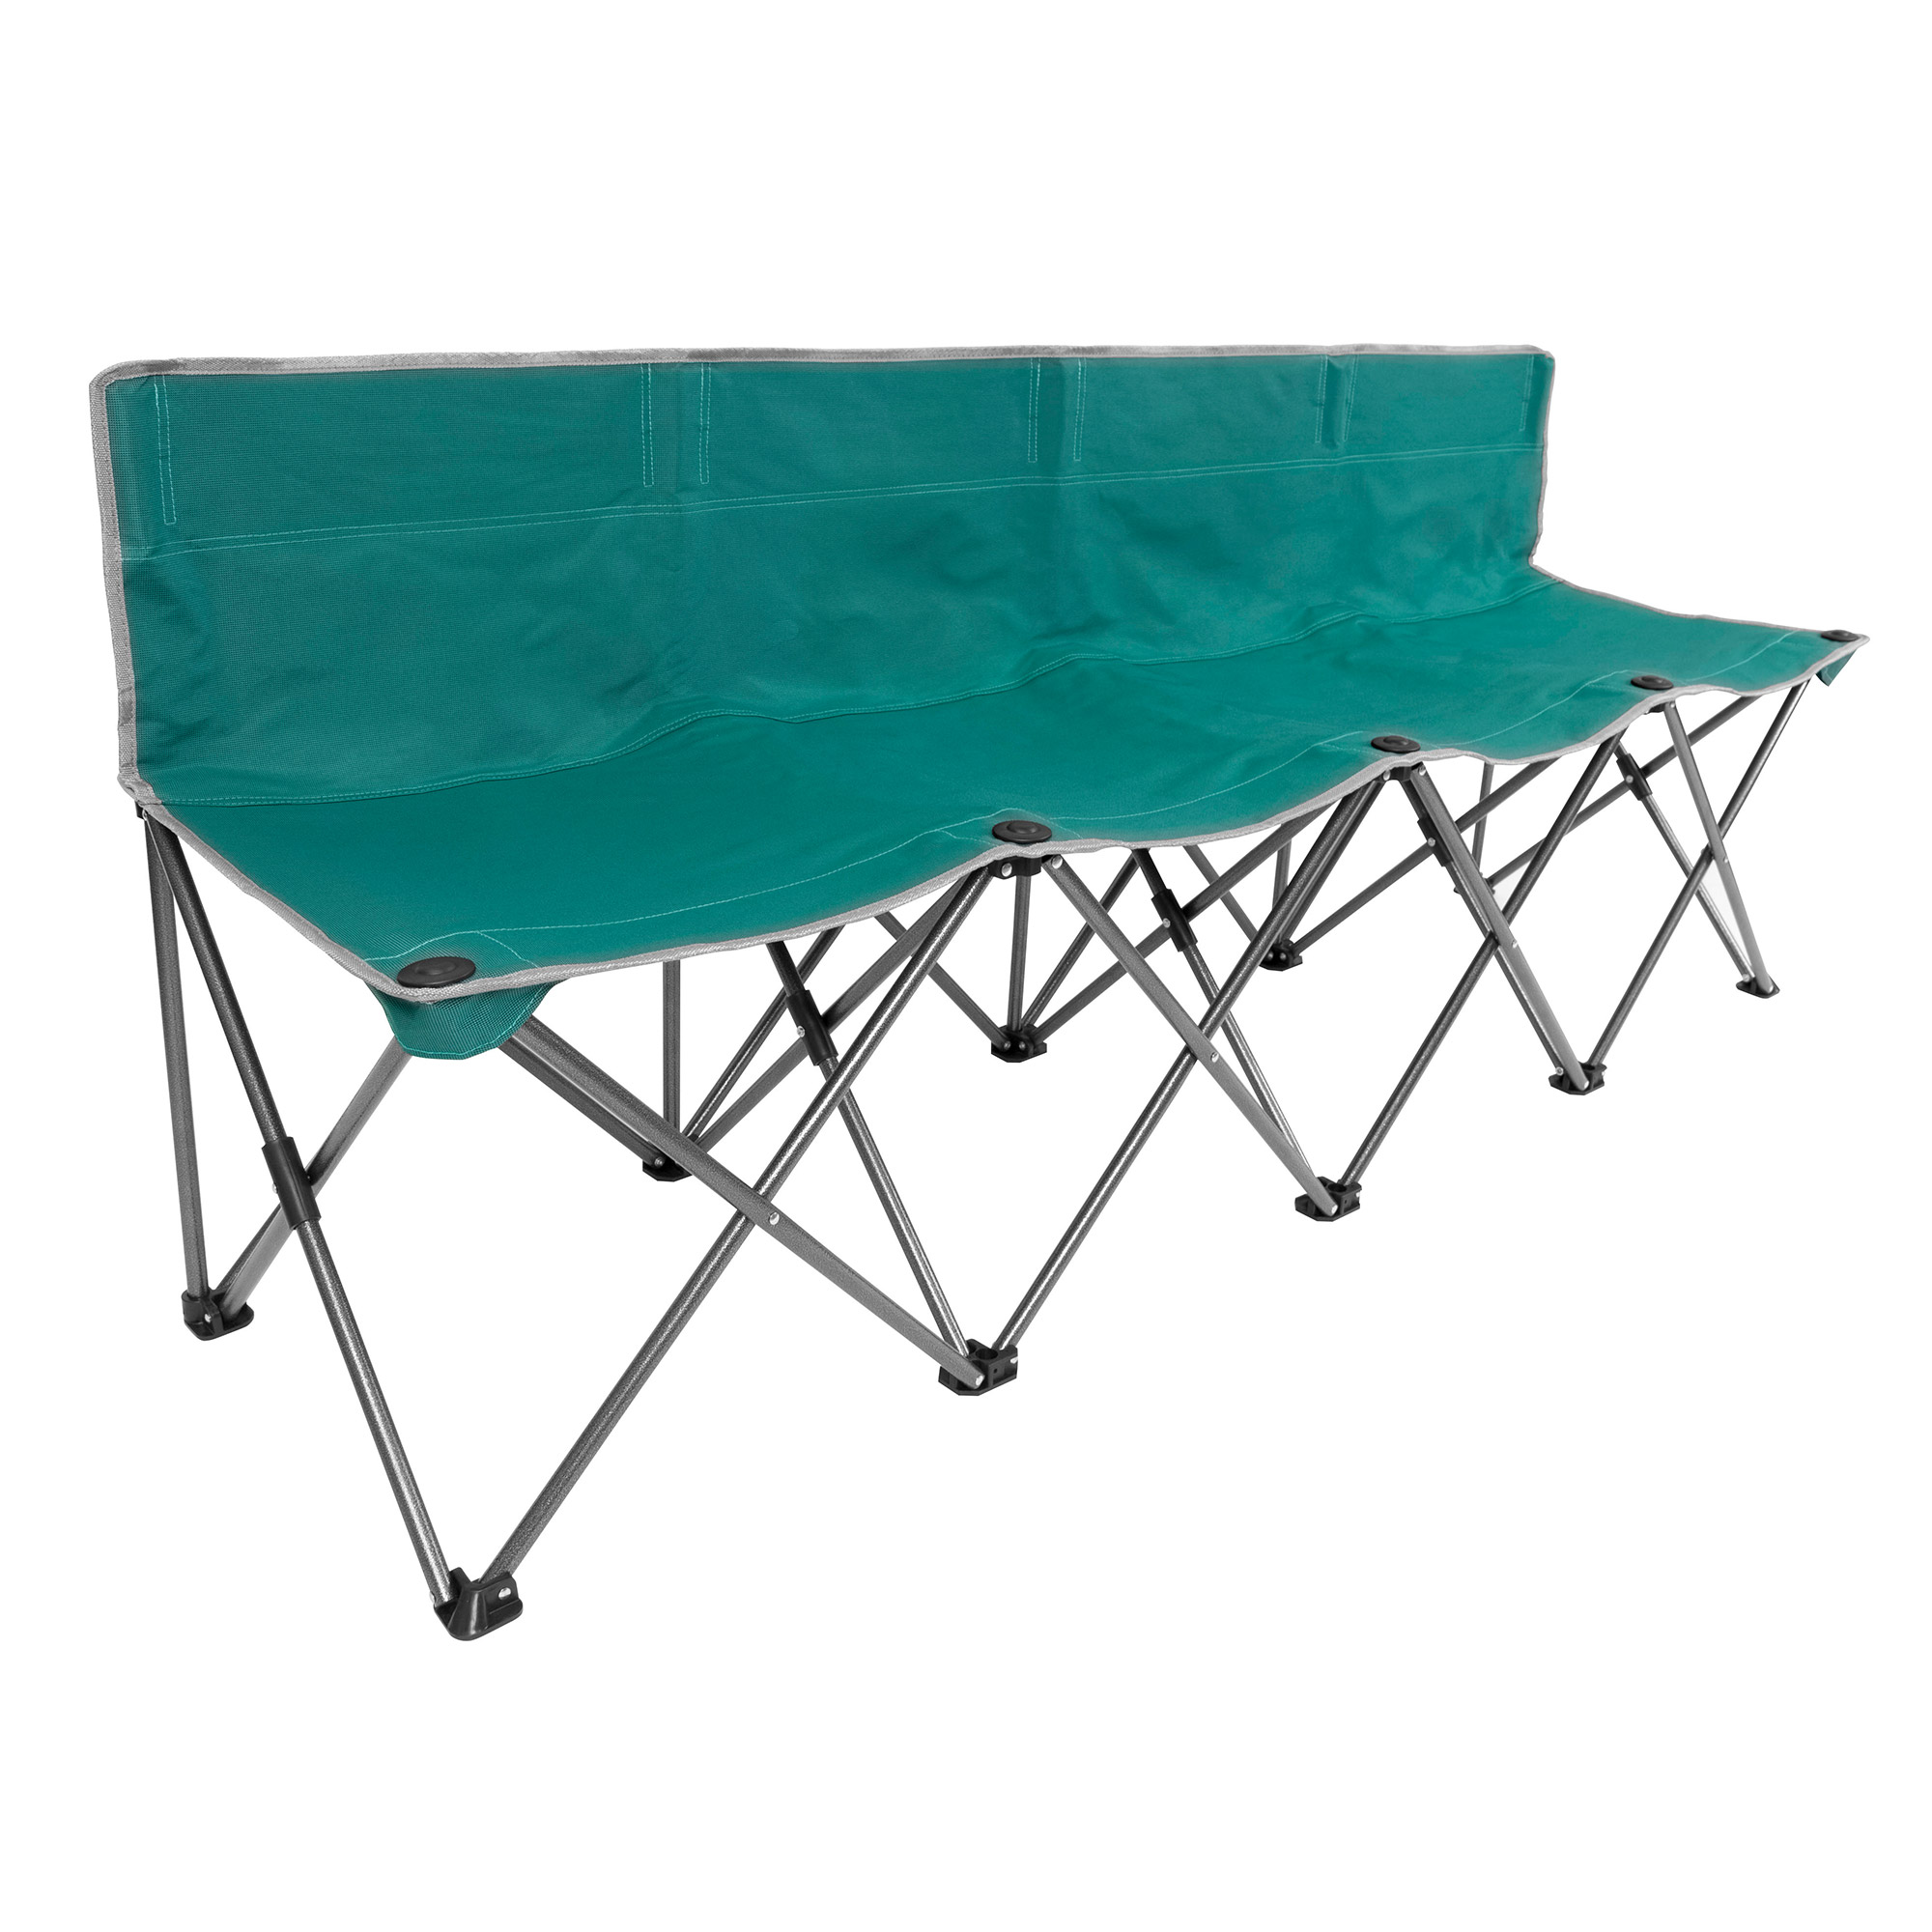 Folding 4 Person Team Bench Outdoor Beach Camping Hiking Picnic Bench Chair Ebay